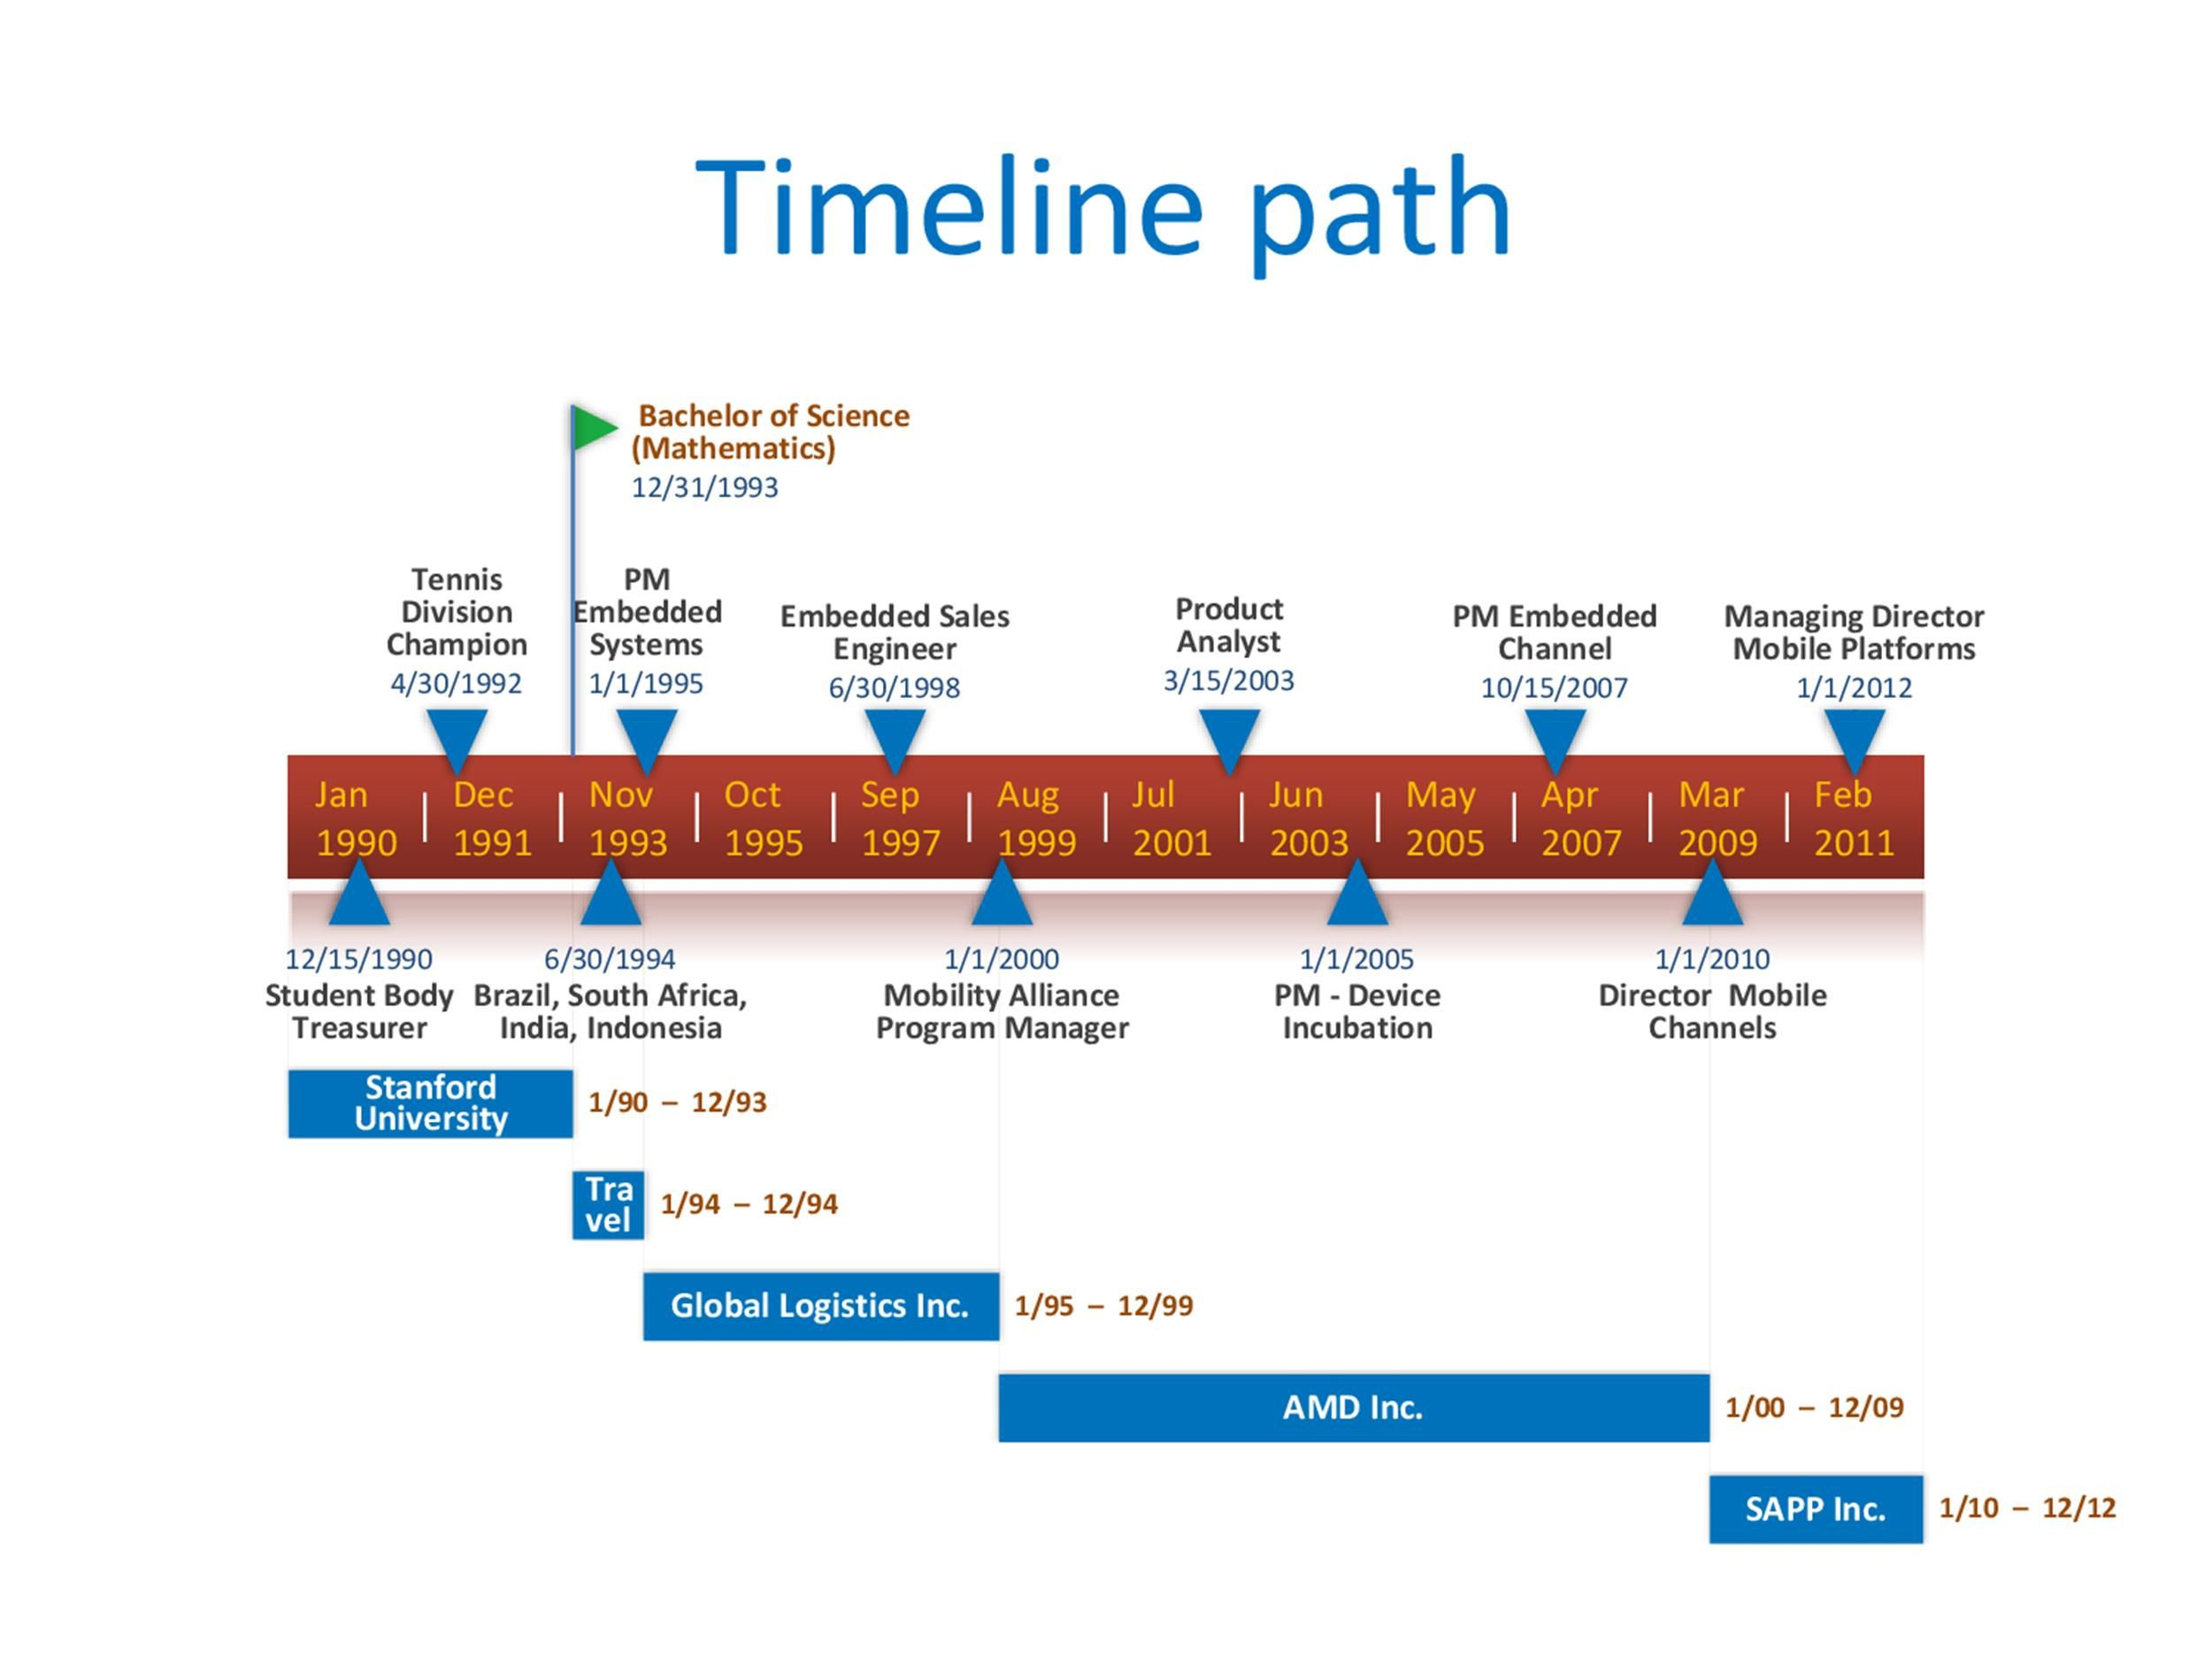 009 Dreaded Timeline Template In Word High Resolution  2010 Wordpres FreeFull